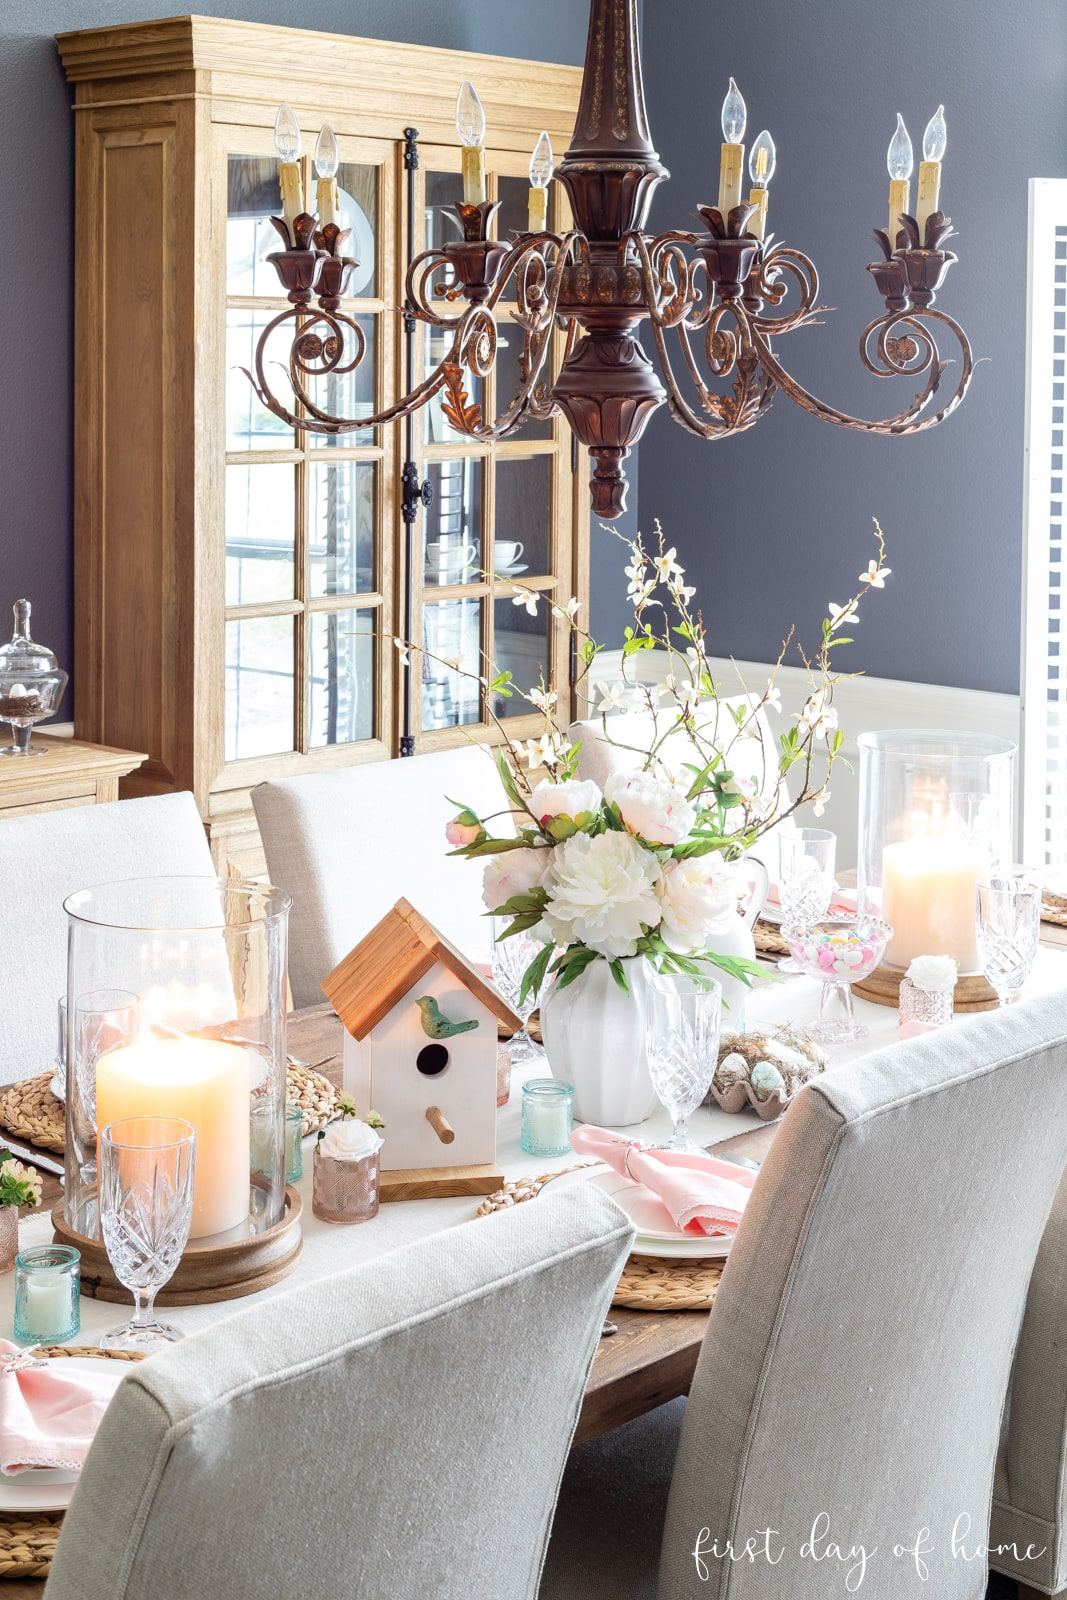 Spring tablescape with pastel blue and pink accents and birdhouse centerpiece with faux florals